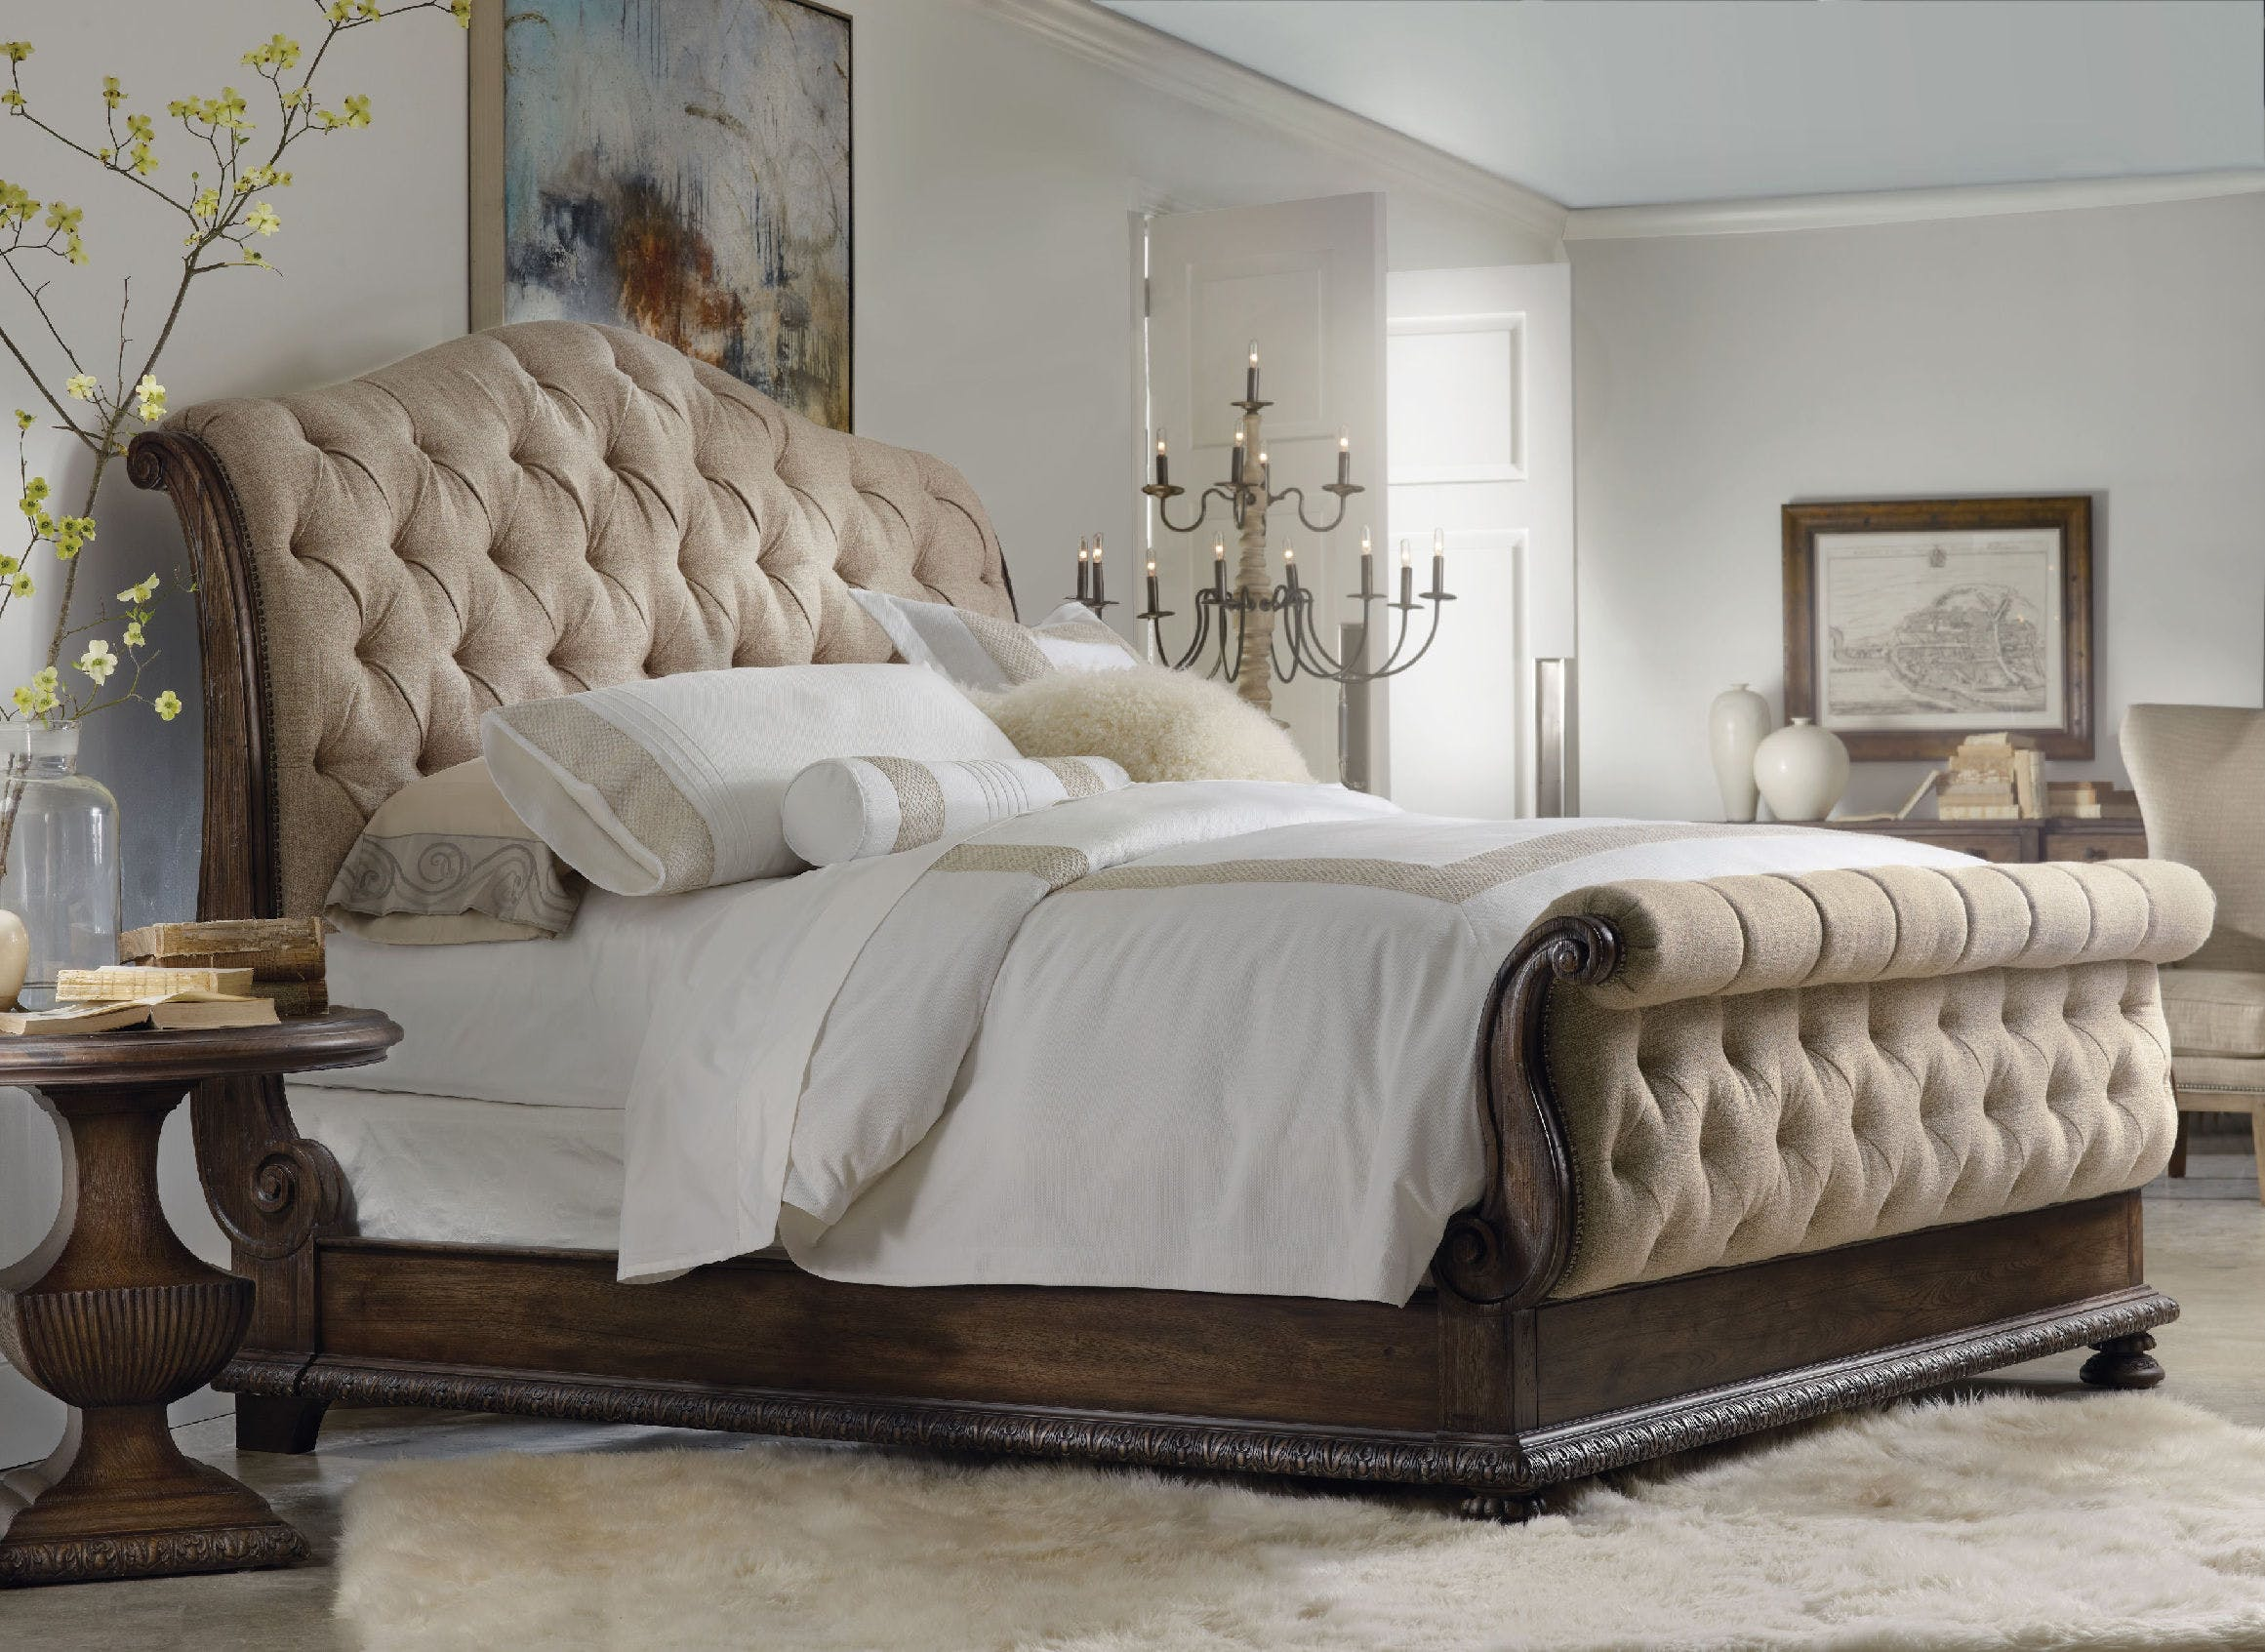 hooker furniture rhapsody king tufted bed . hooker furniture bedroom rhapsody king tufted bed